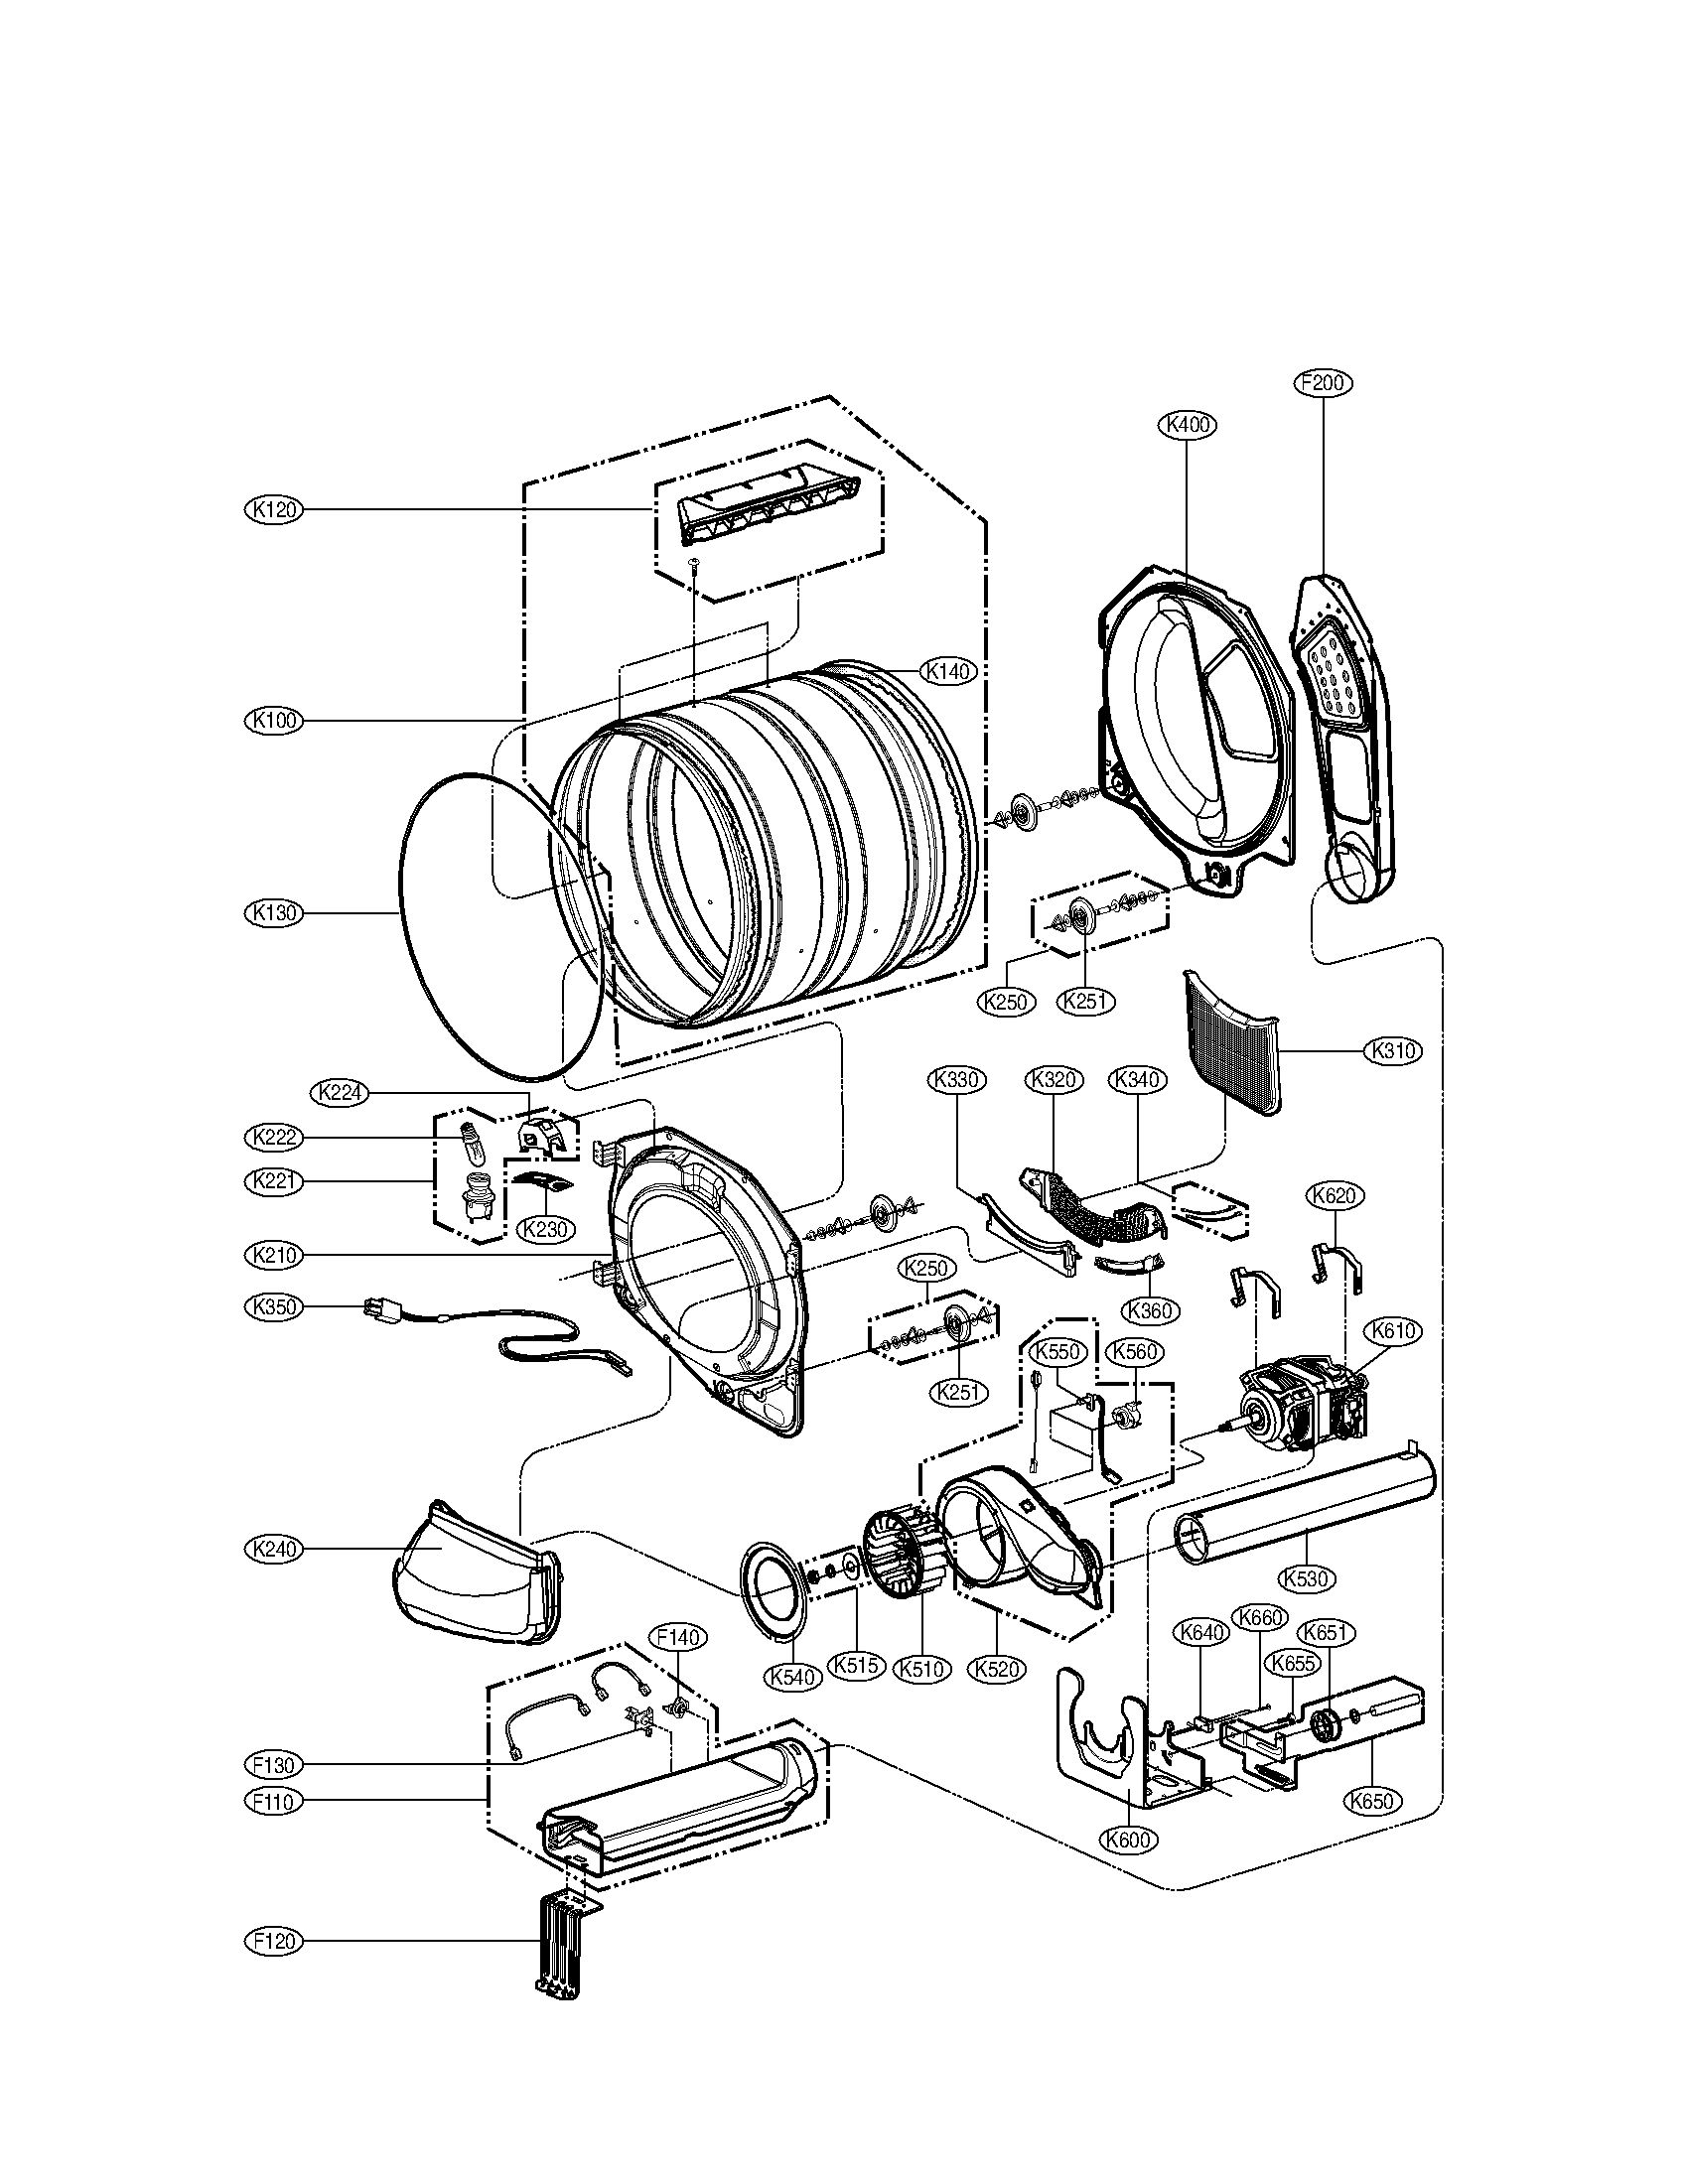 drum and motor parts assembly diagram  u0026 parts list for model dle2140w lg